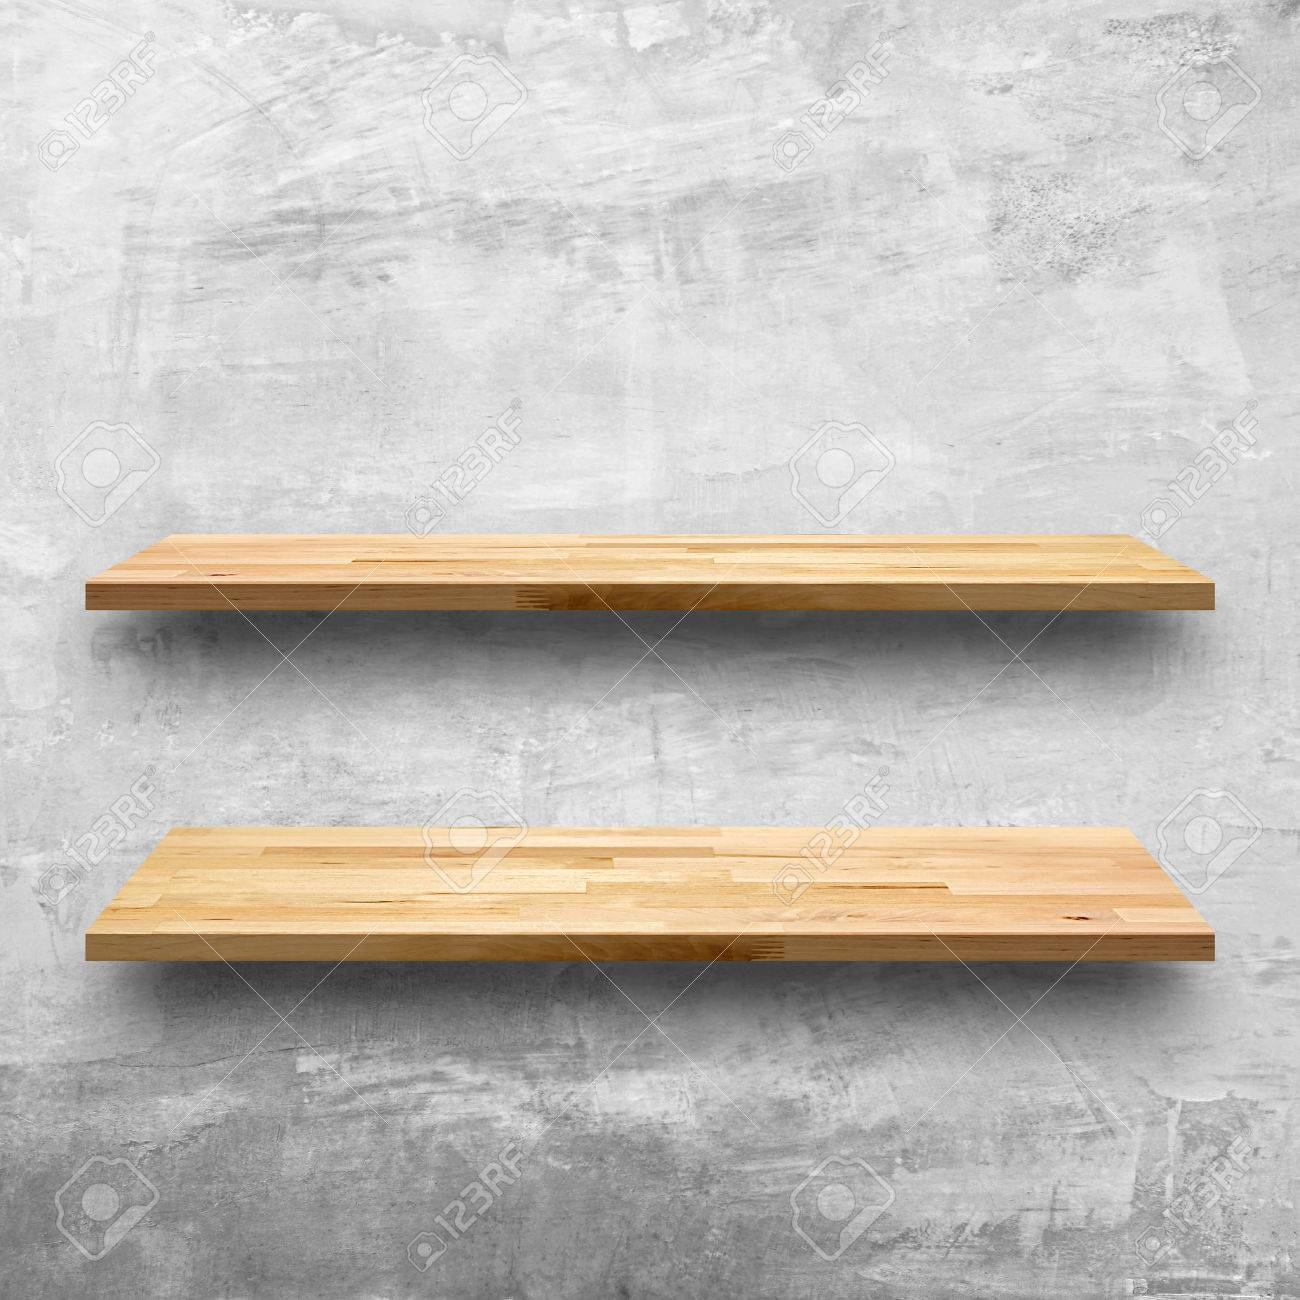 Empty Wooden Shelves On Concrete Wall Background